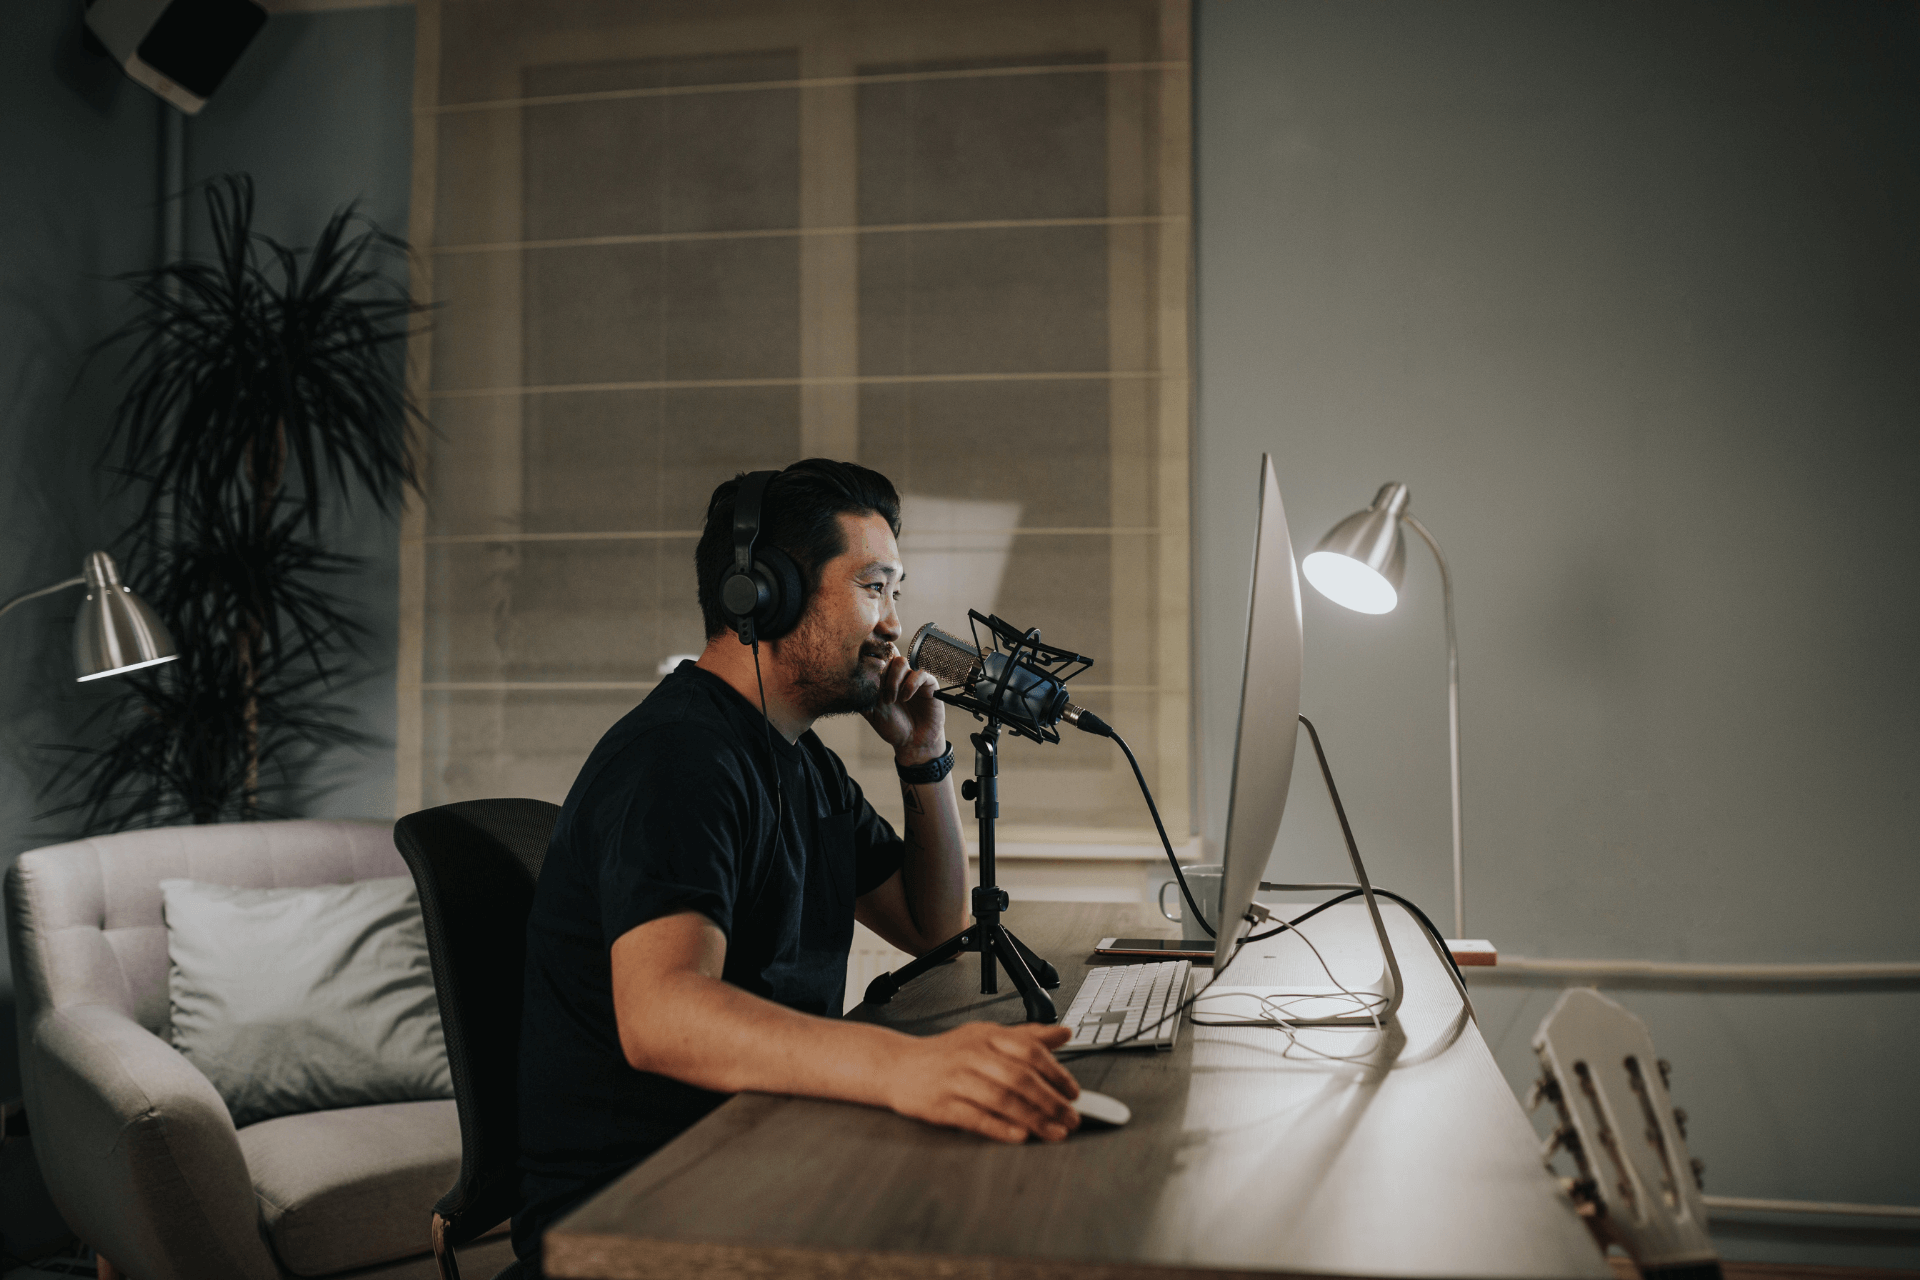 A man records a podcast repurposed from an old blog post